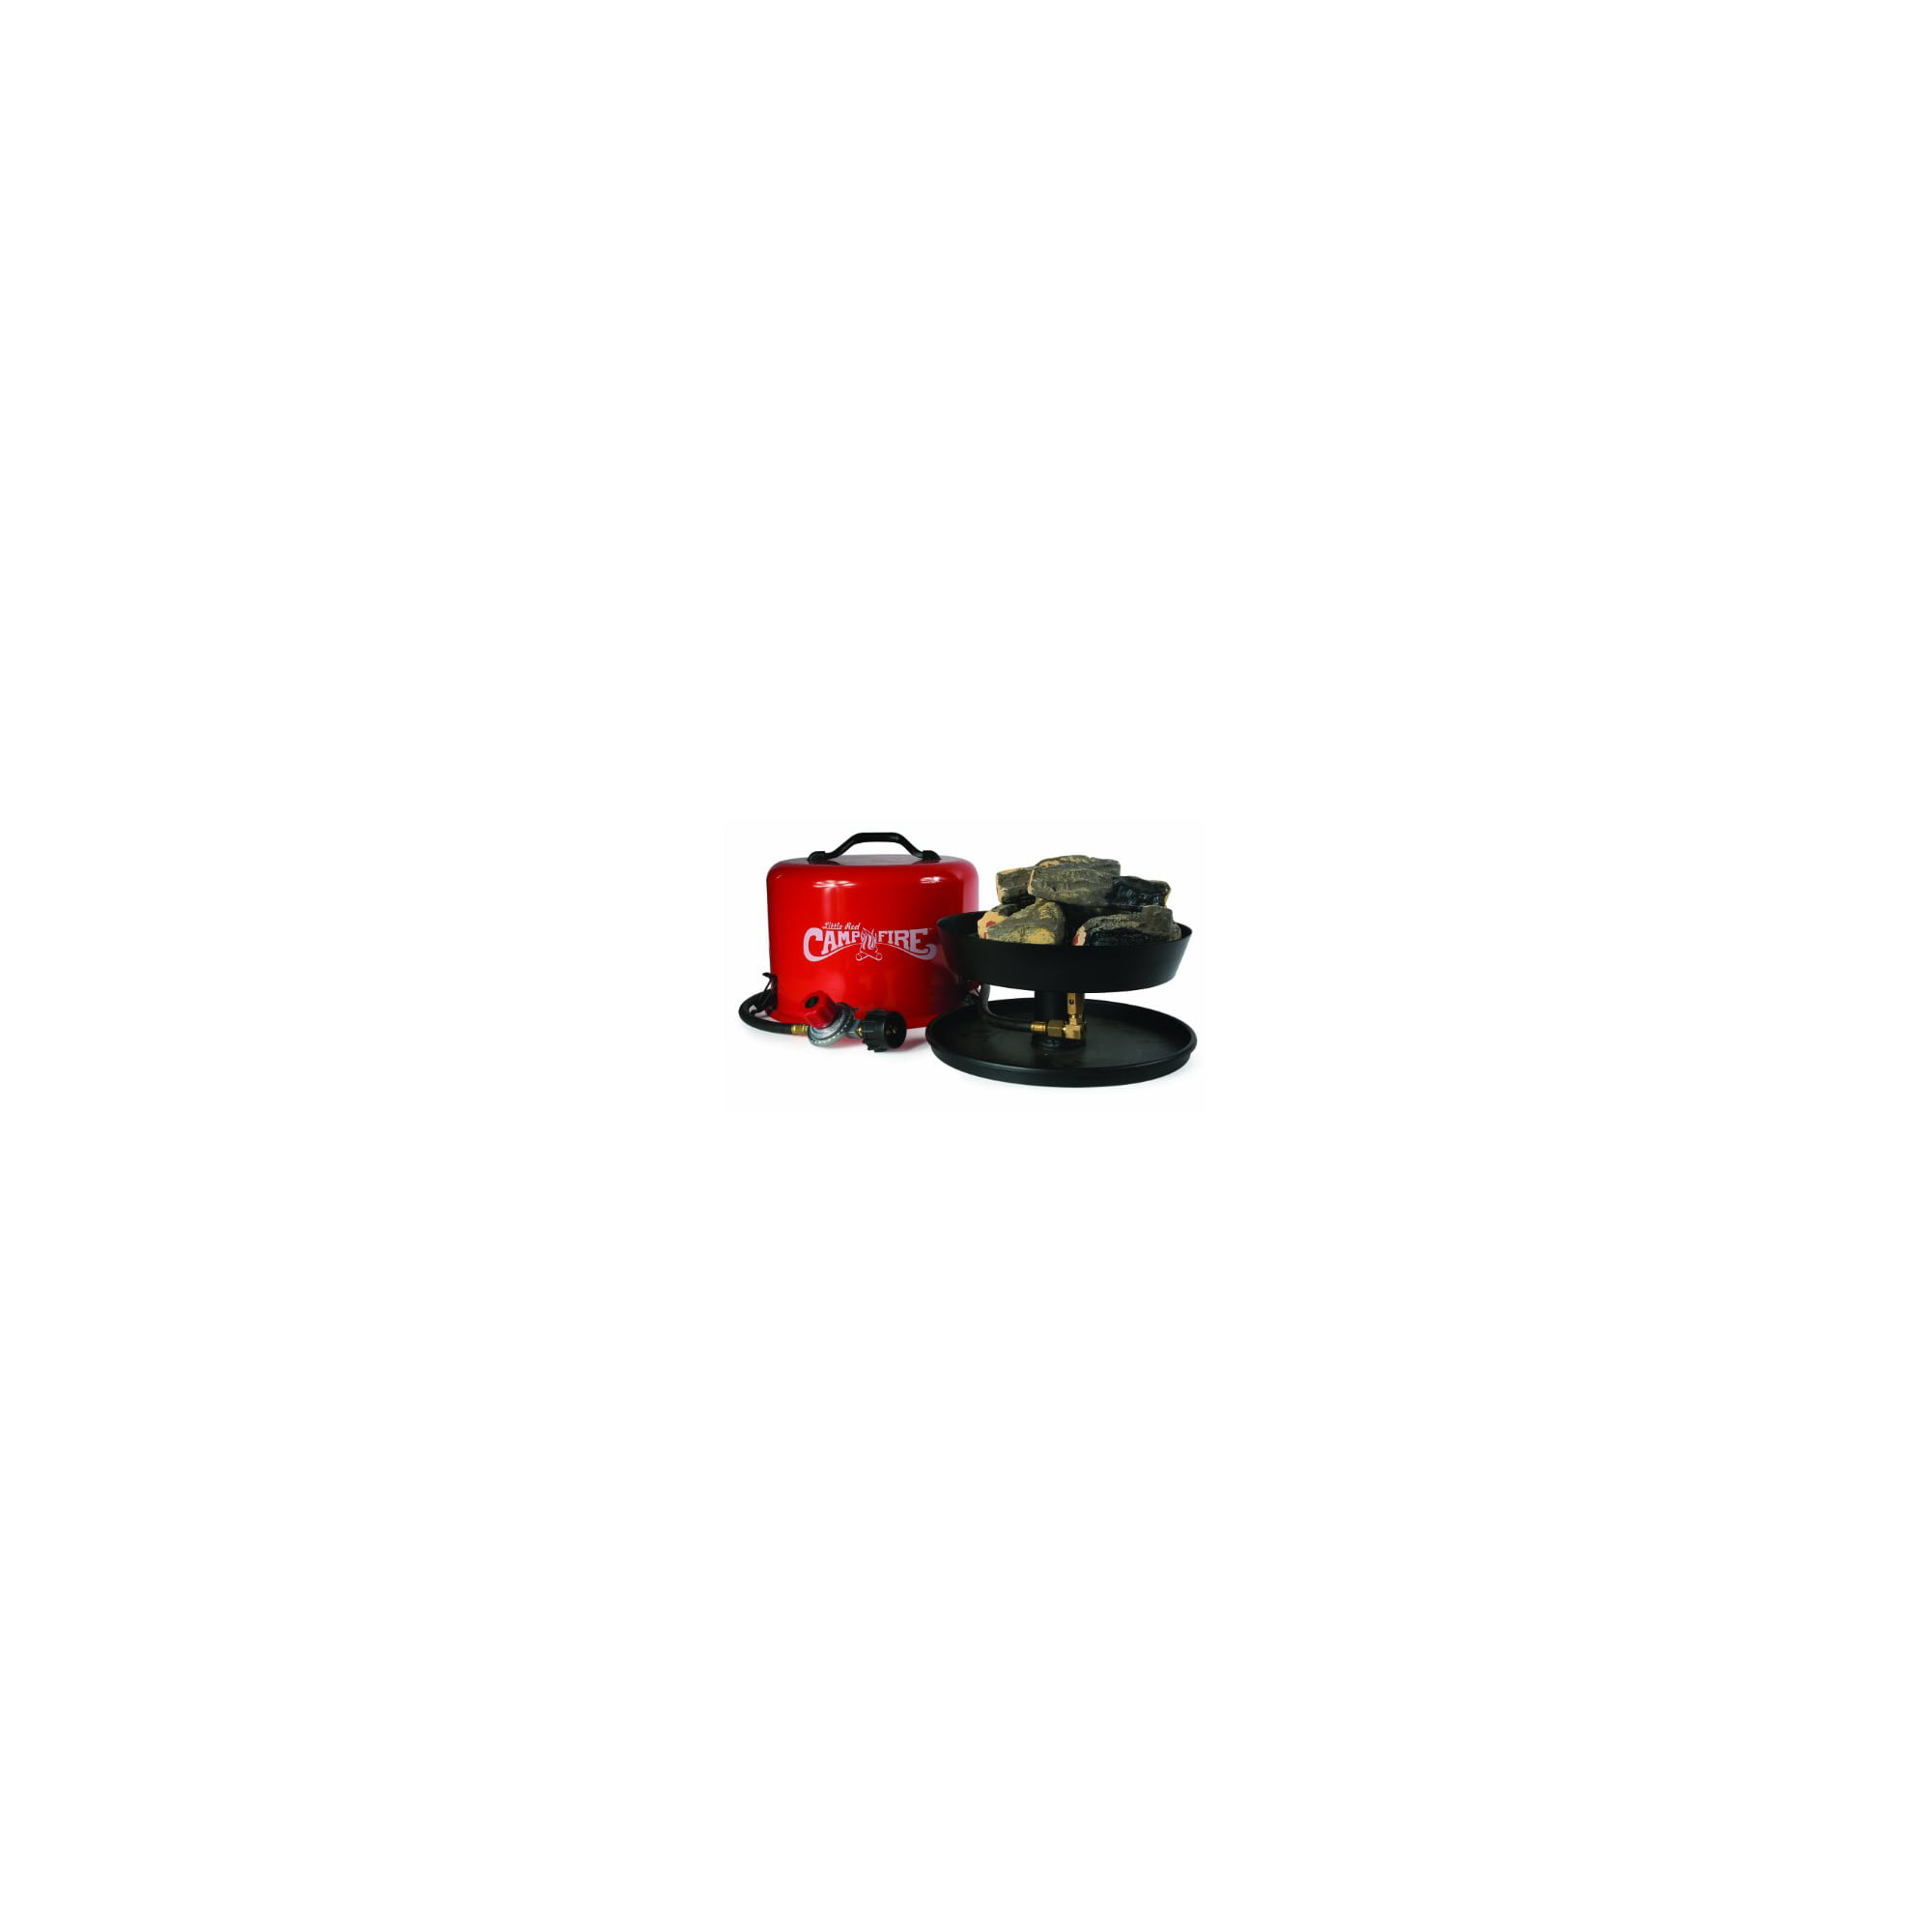 Camco 58031 Little Red Campfire Tm Fire Pit Walmart Canada